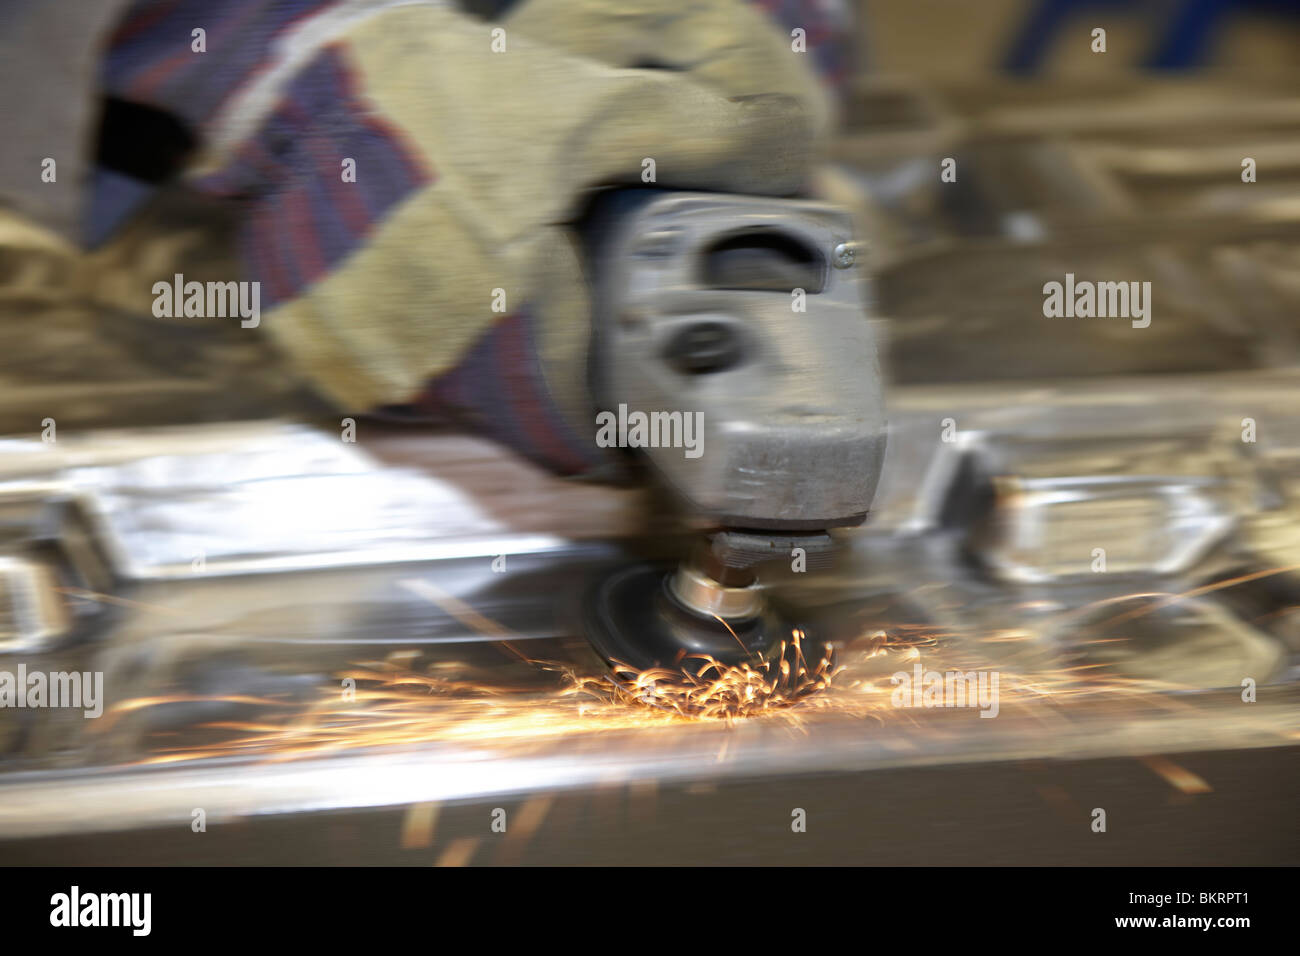 man using a angle grinder on metal surface with movement - Stock Image